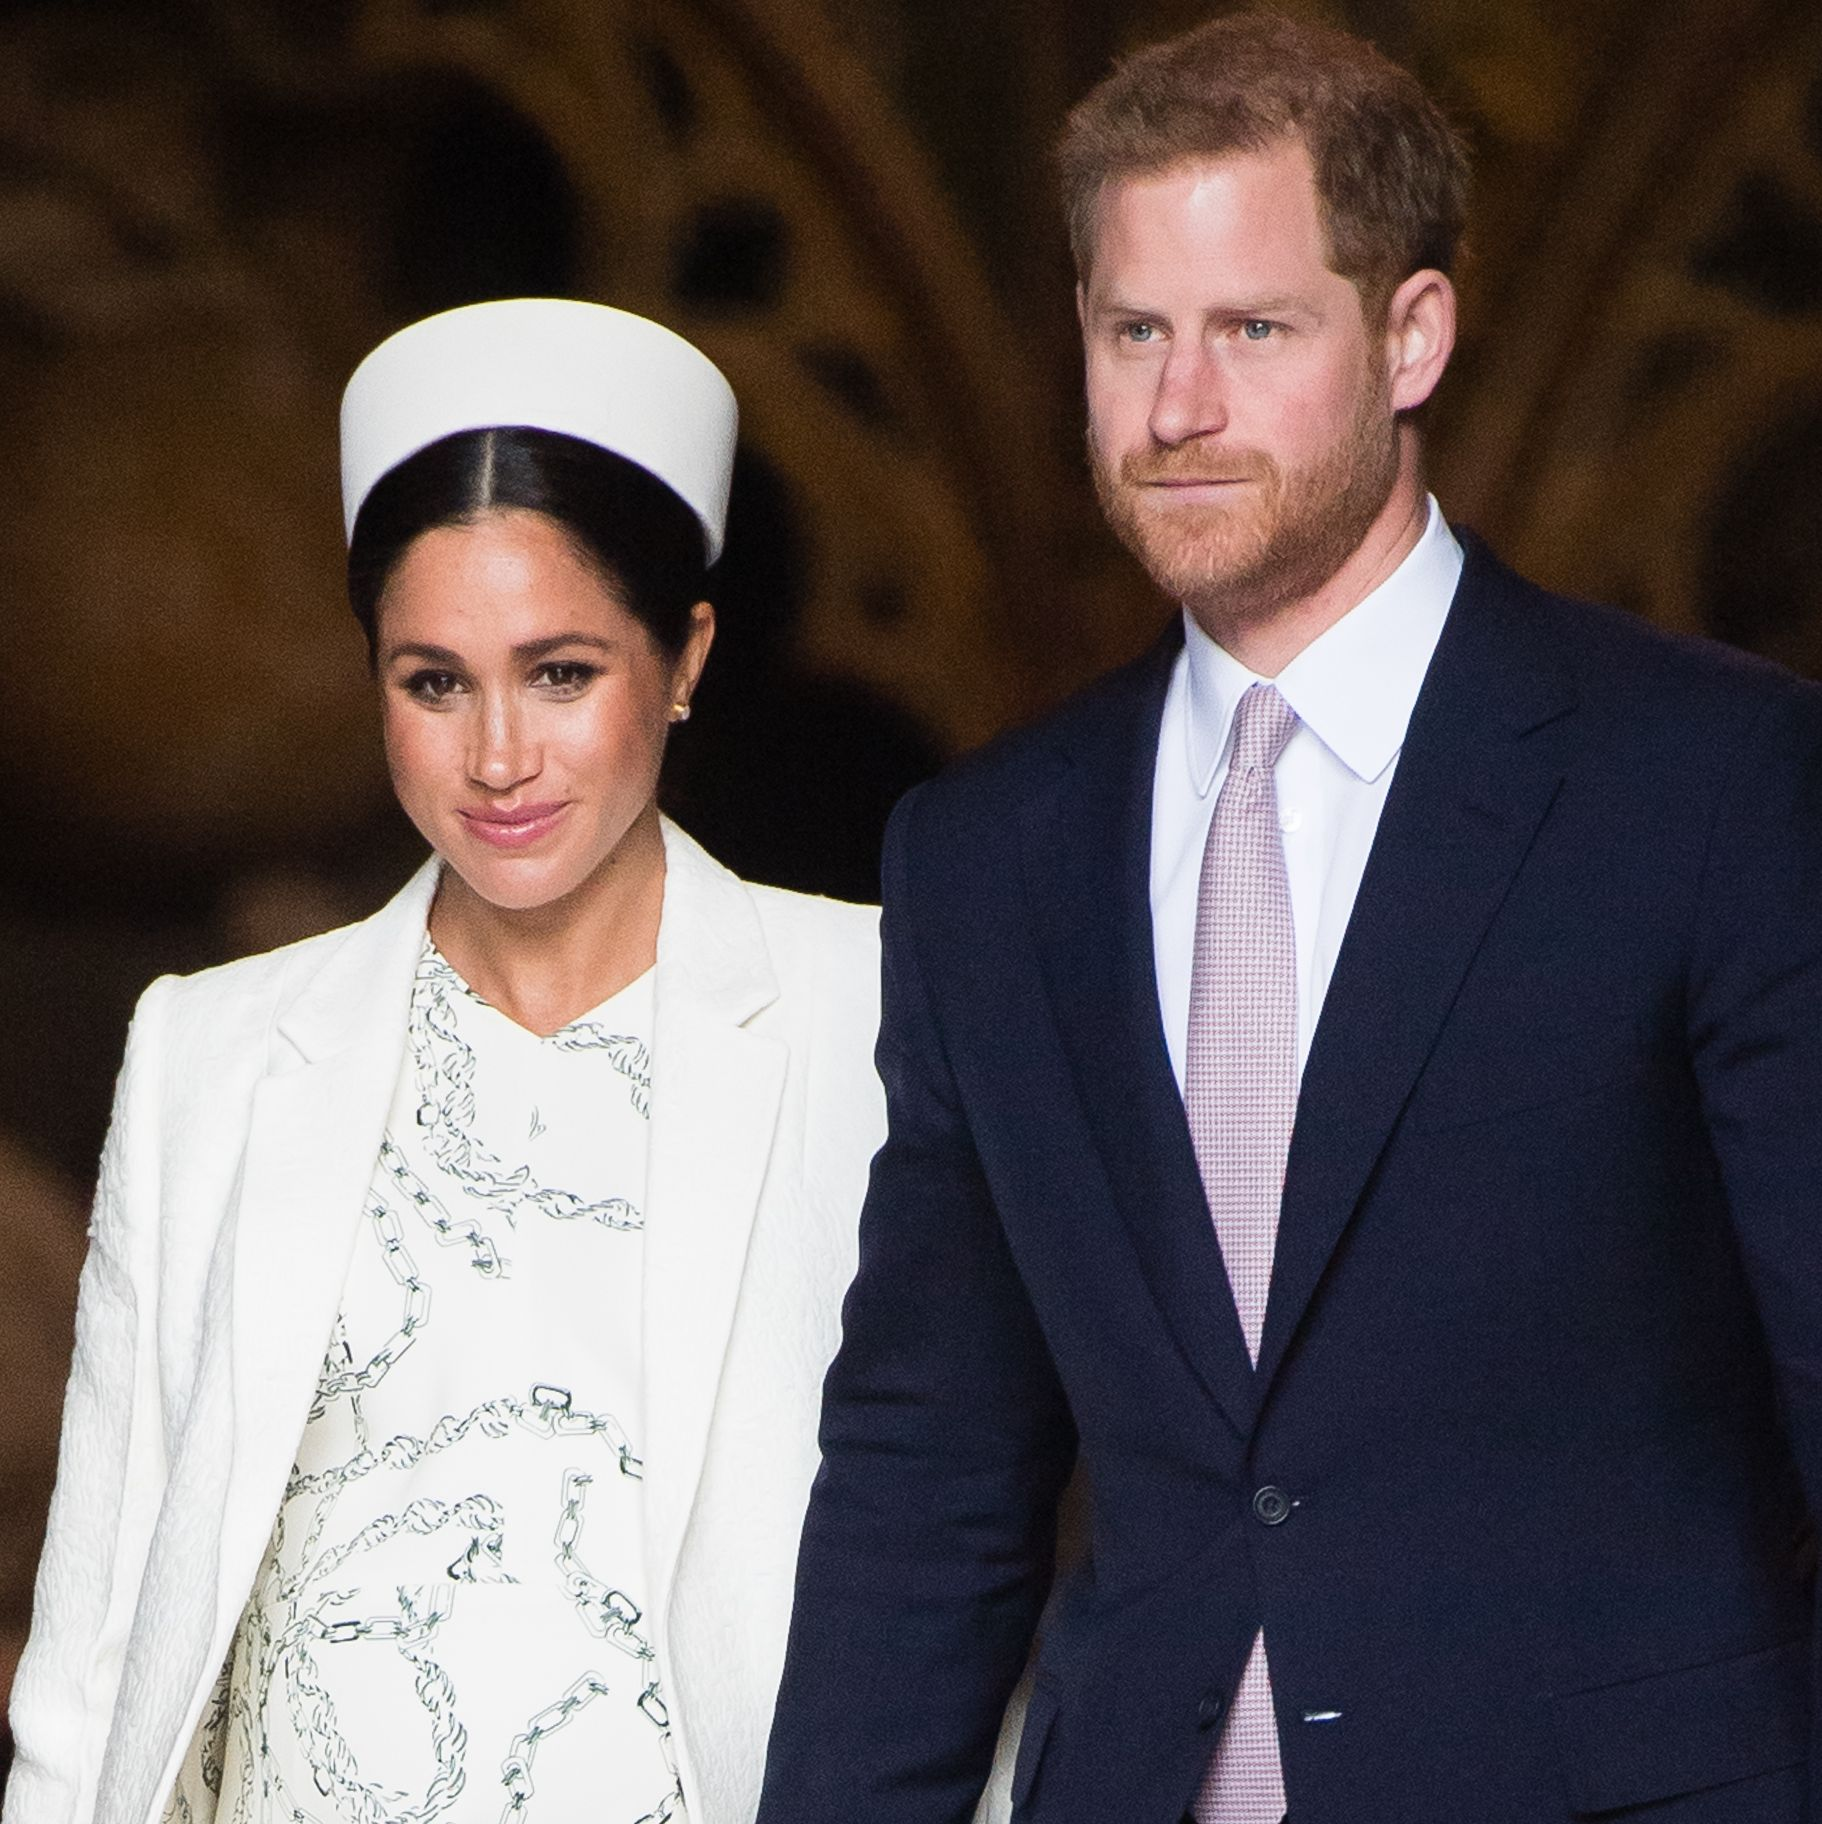 Buckingham Palace Breaks Silence on Meghan Markle and Prince Harry's Reported Move to Africa